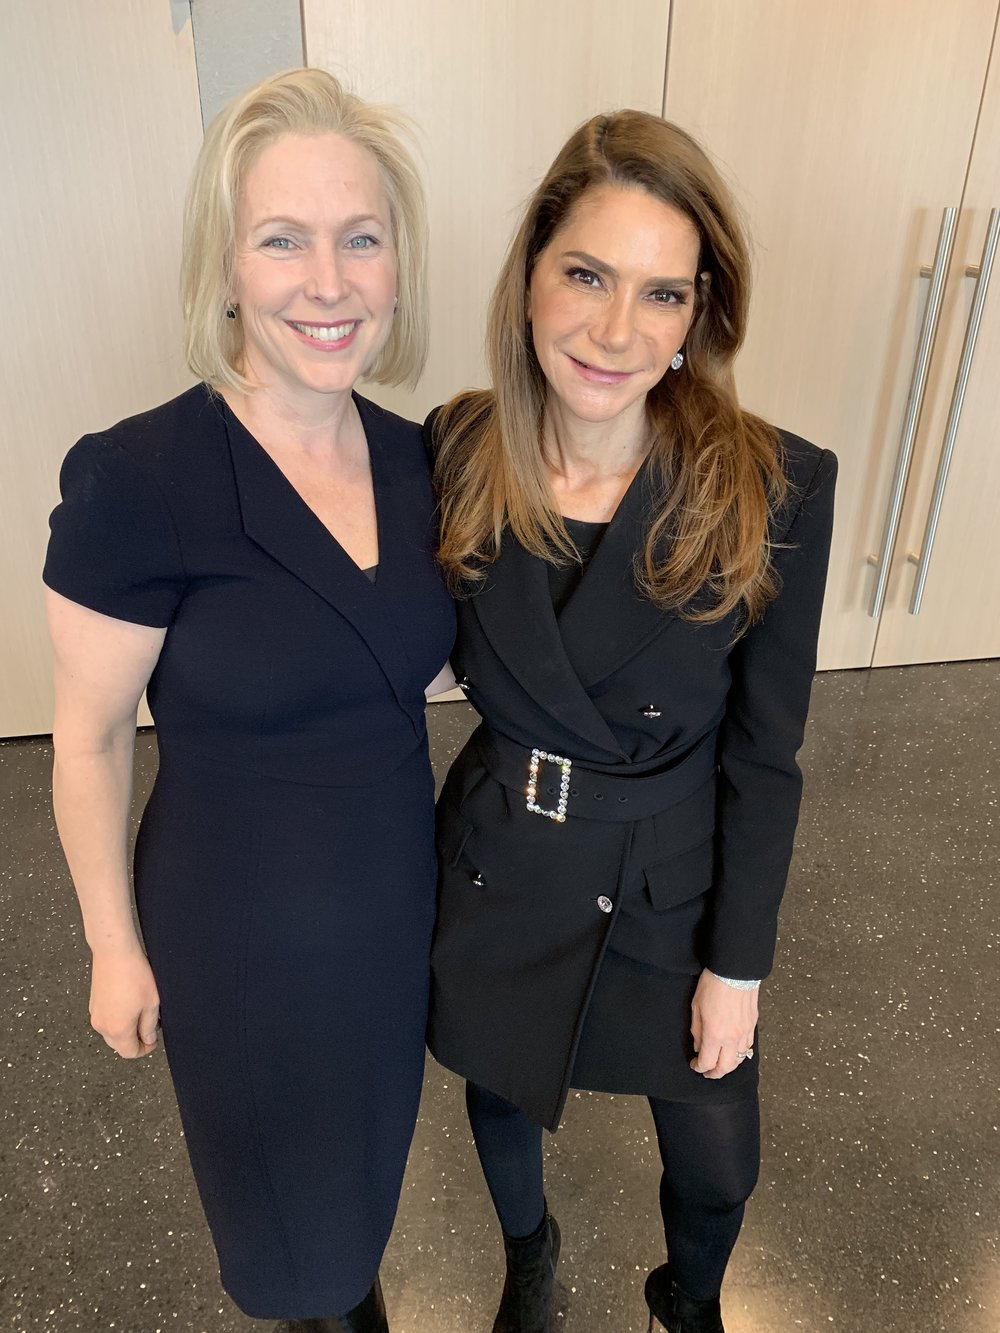 Meeting With 2020 Presidential Candidate Senator Kirsten Gillibrand